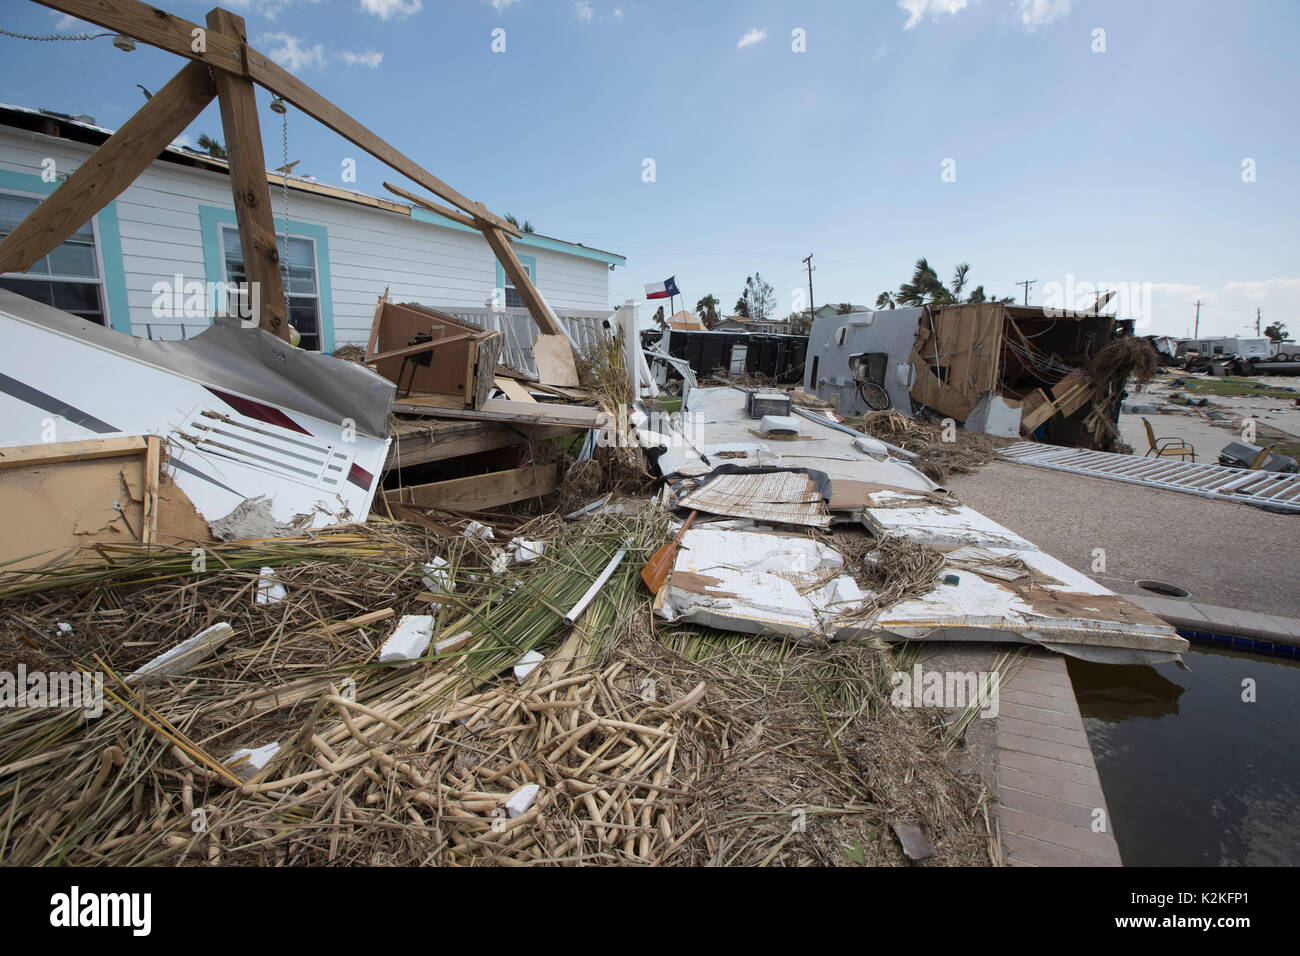 Port Aransas, Texas USA. 30th Aug, 2017. Extensive damage from Hurricane Harvey's hit almost a week ago litters Stock Photo